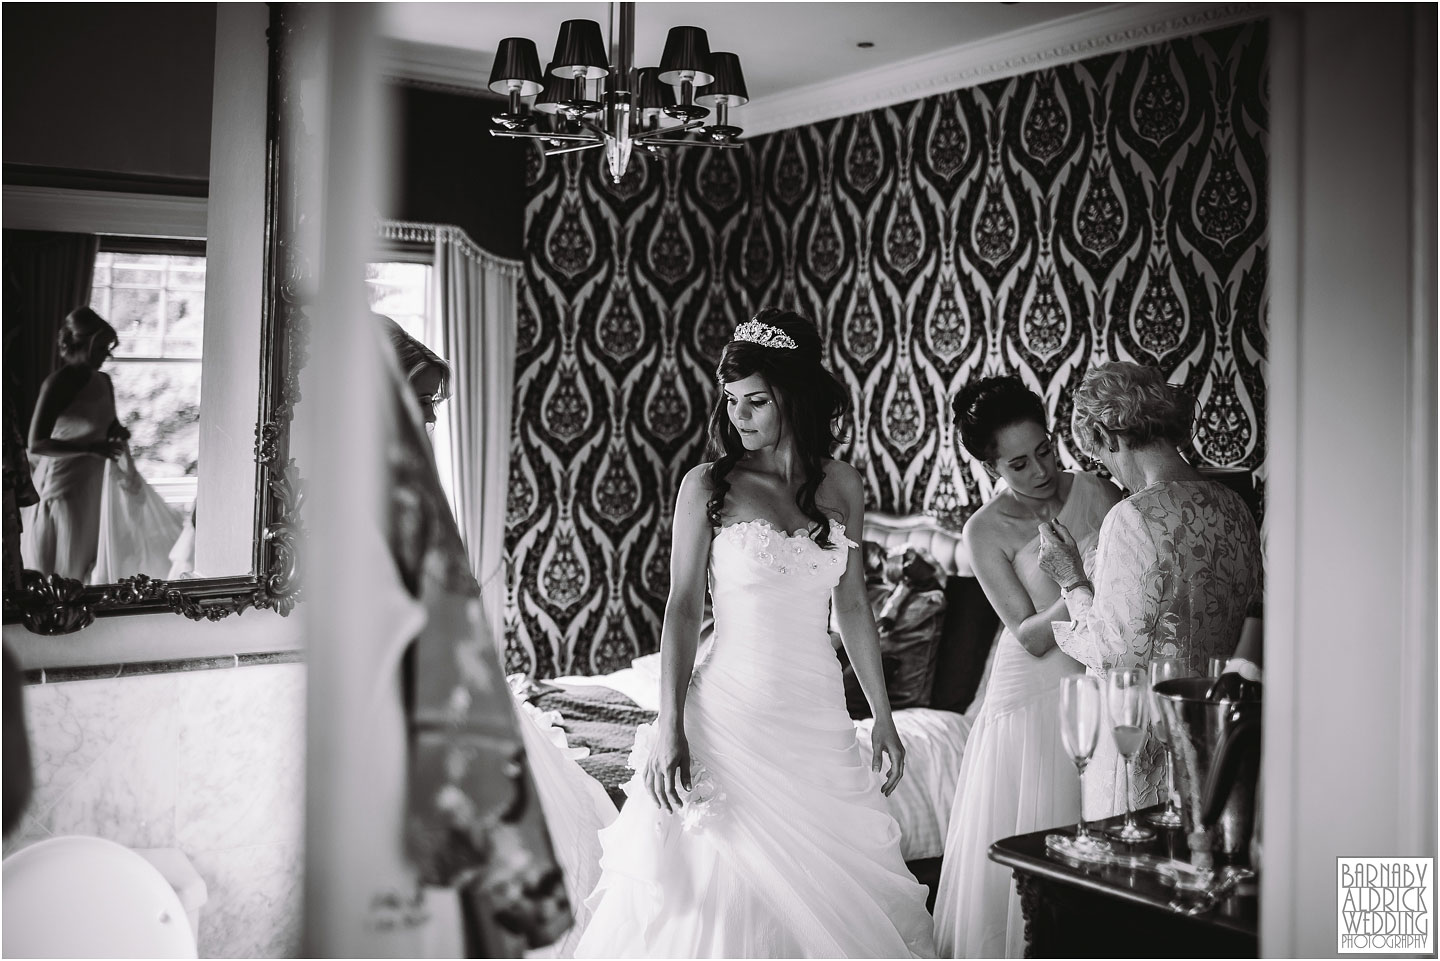 A wedding photograph of a bride getting ready at the boutique wedding venue Crab Manor near Thirsk